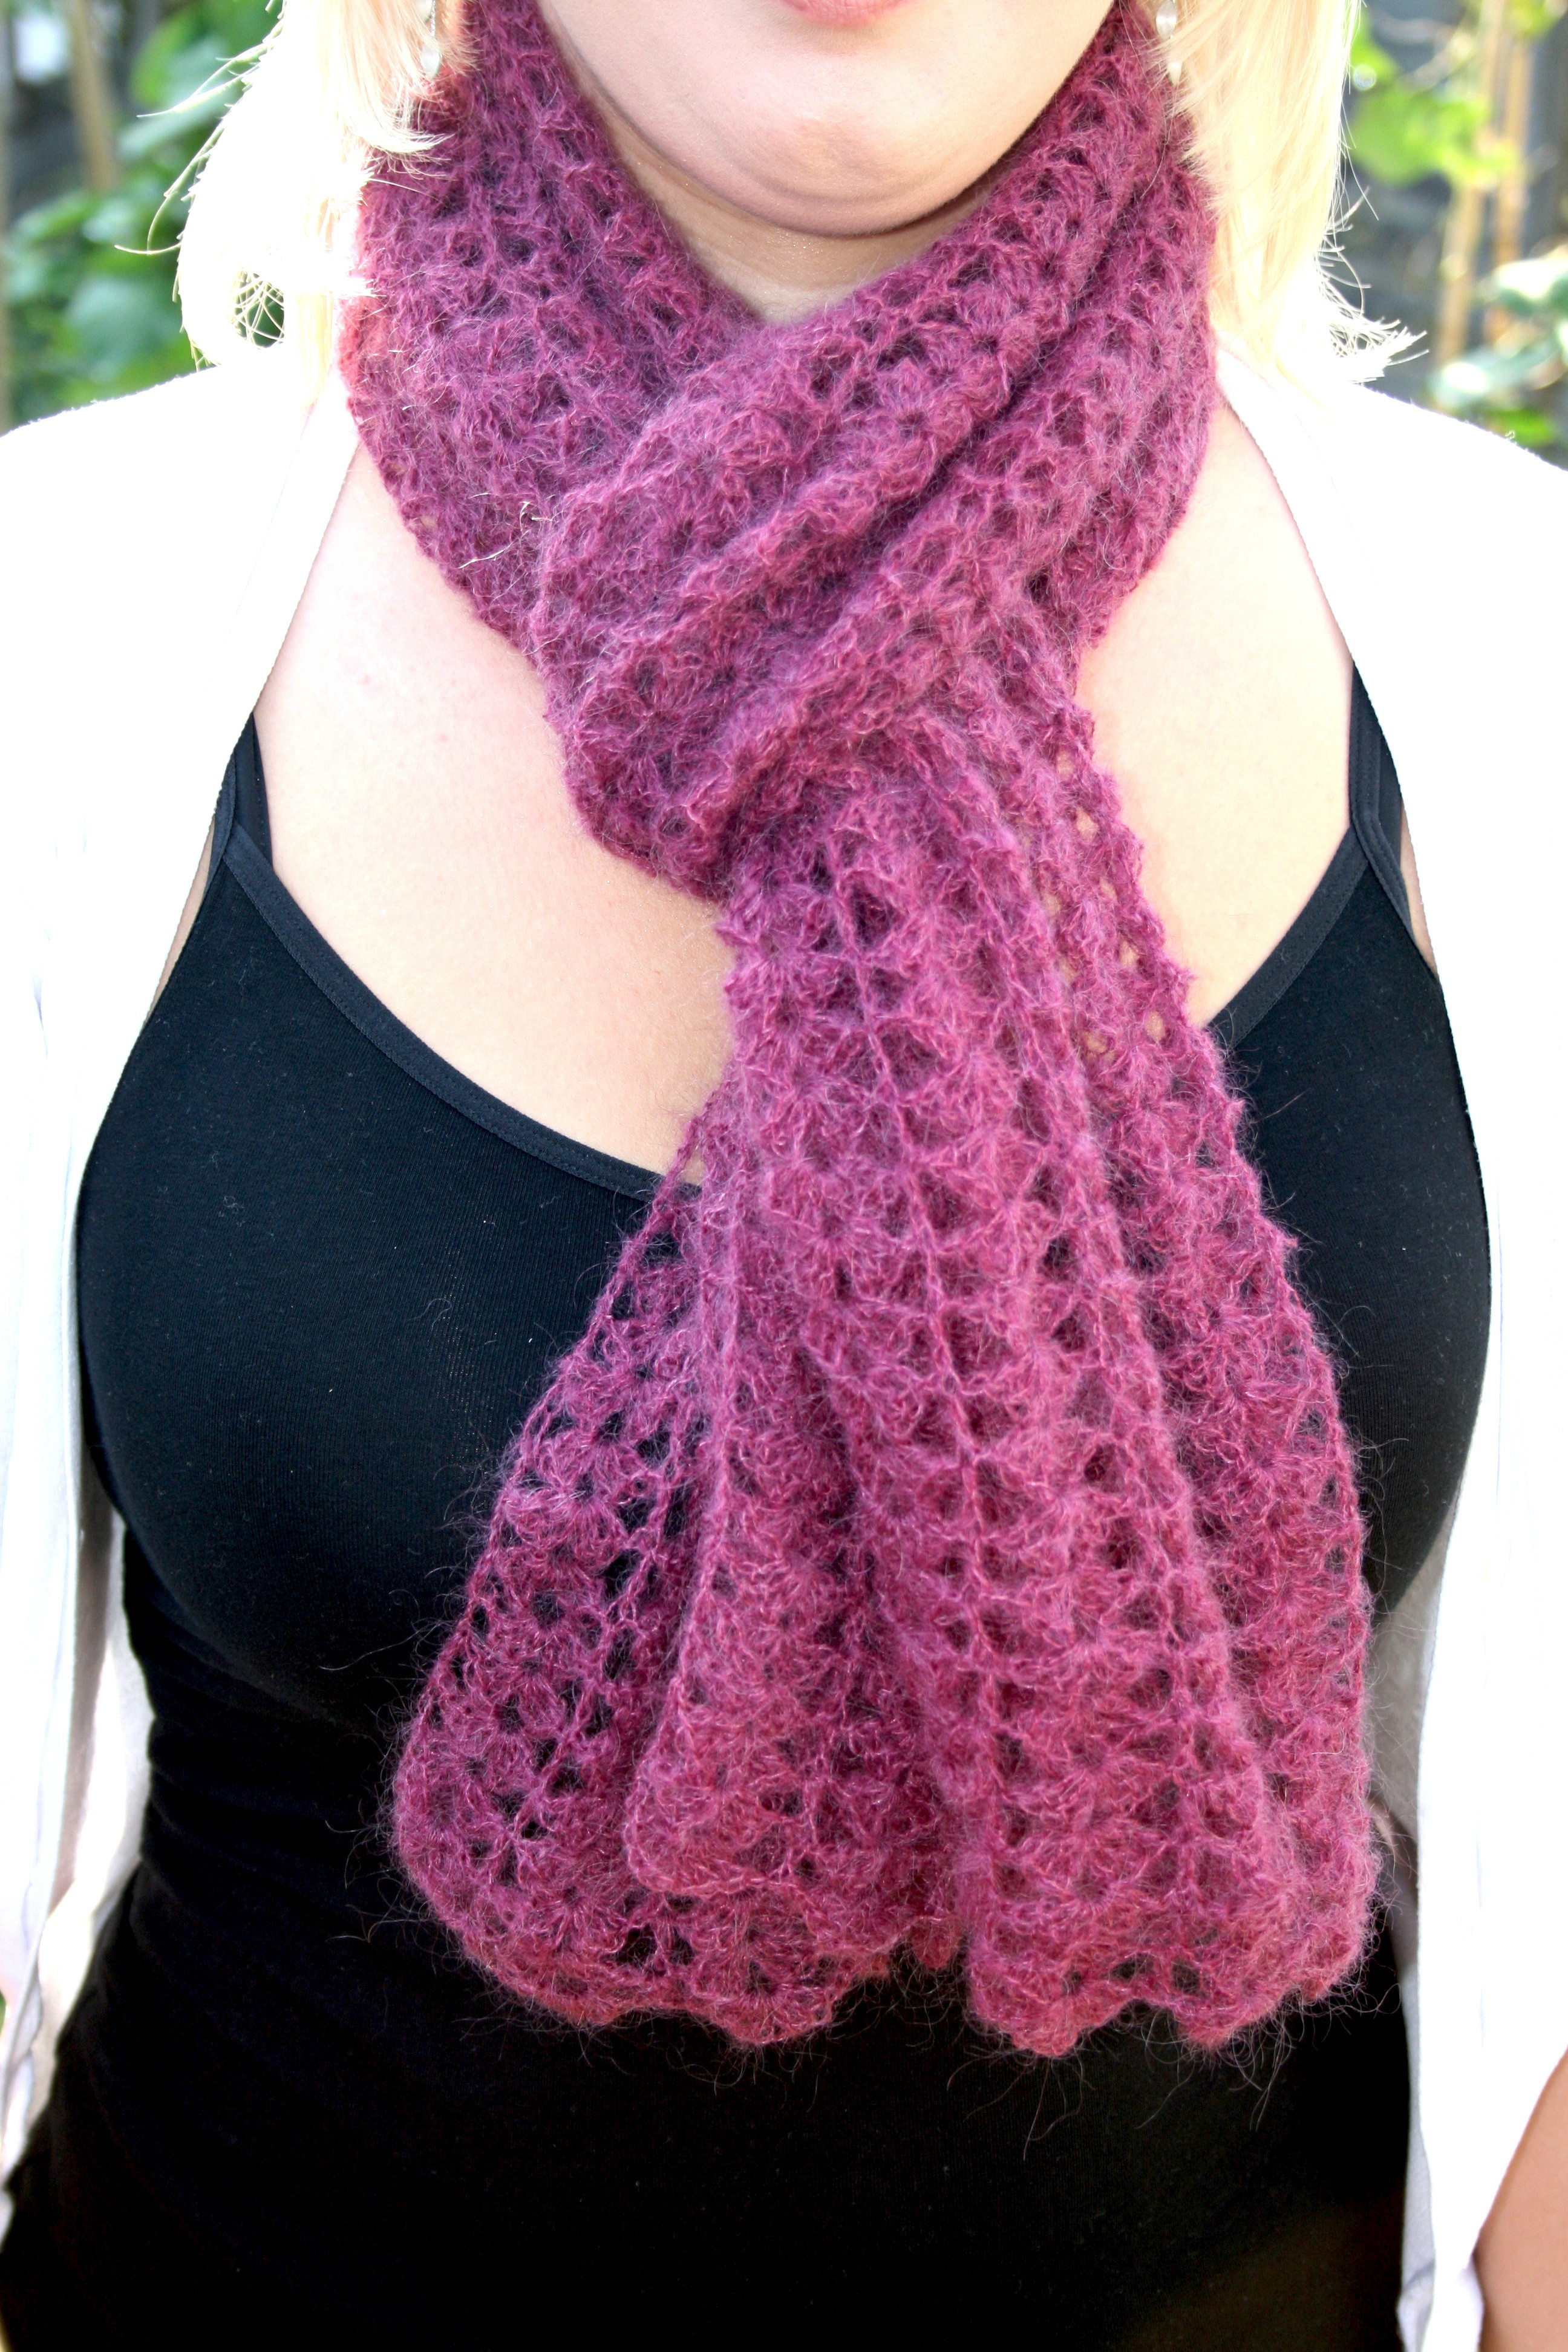 Luxury Crochet All About Crocheting Free Patterns and Instructions Crochet Scarves Of Amazing 43 Photos Crochet Scarves